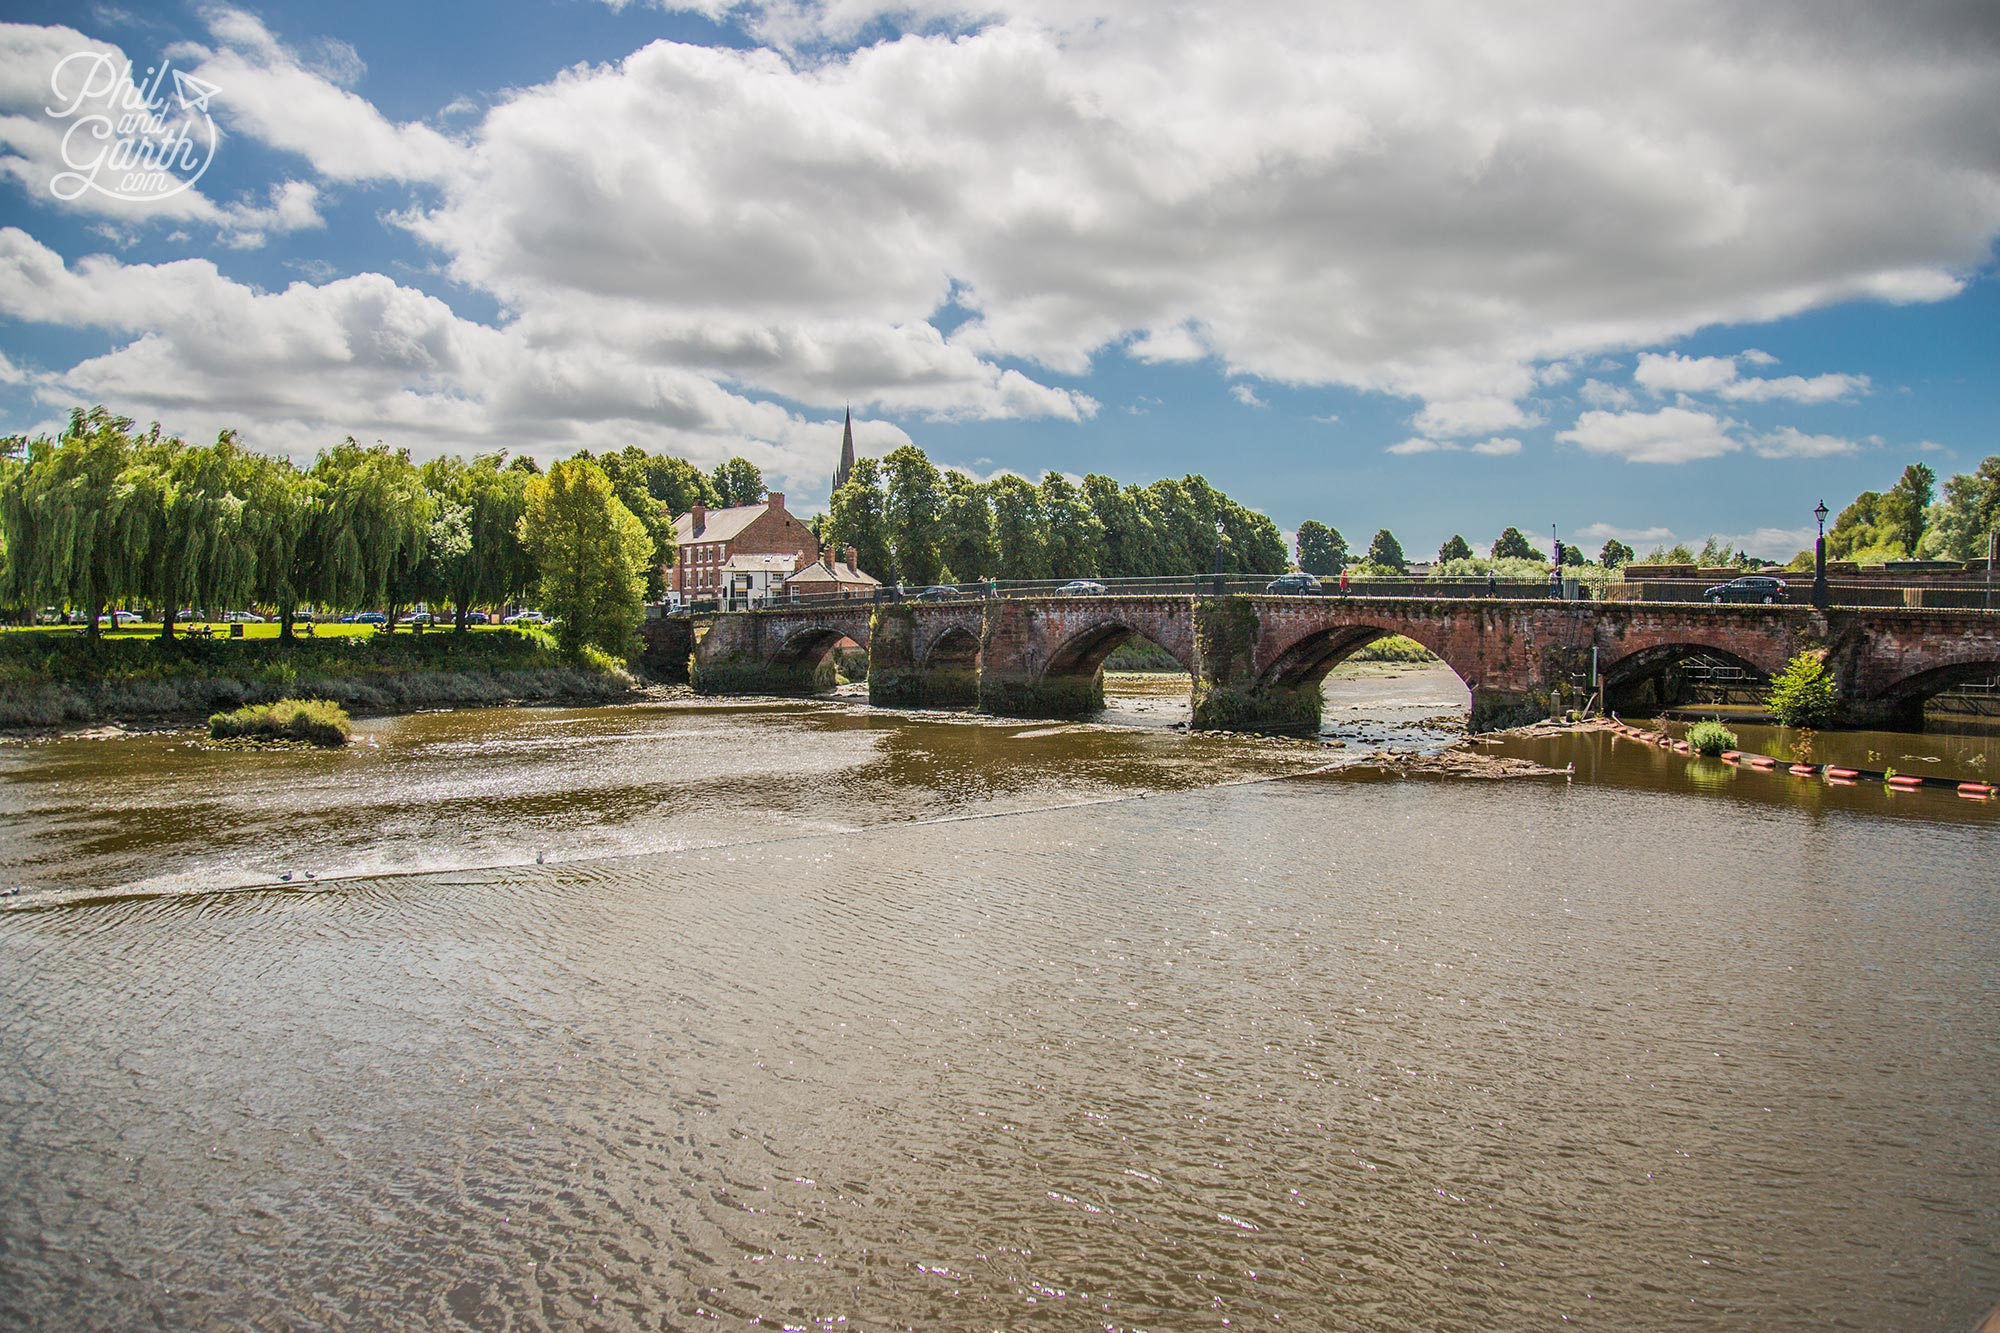 The Old Dee Bridge once had a drawbridge and towers